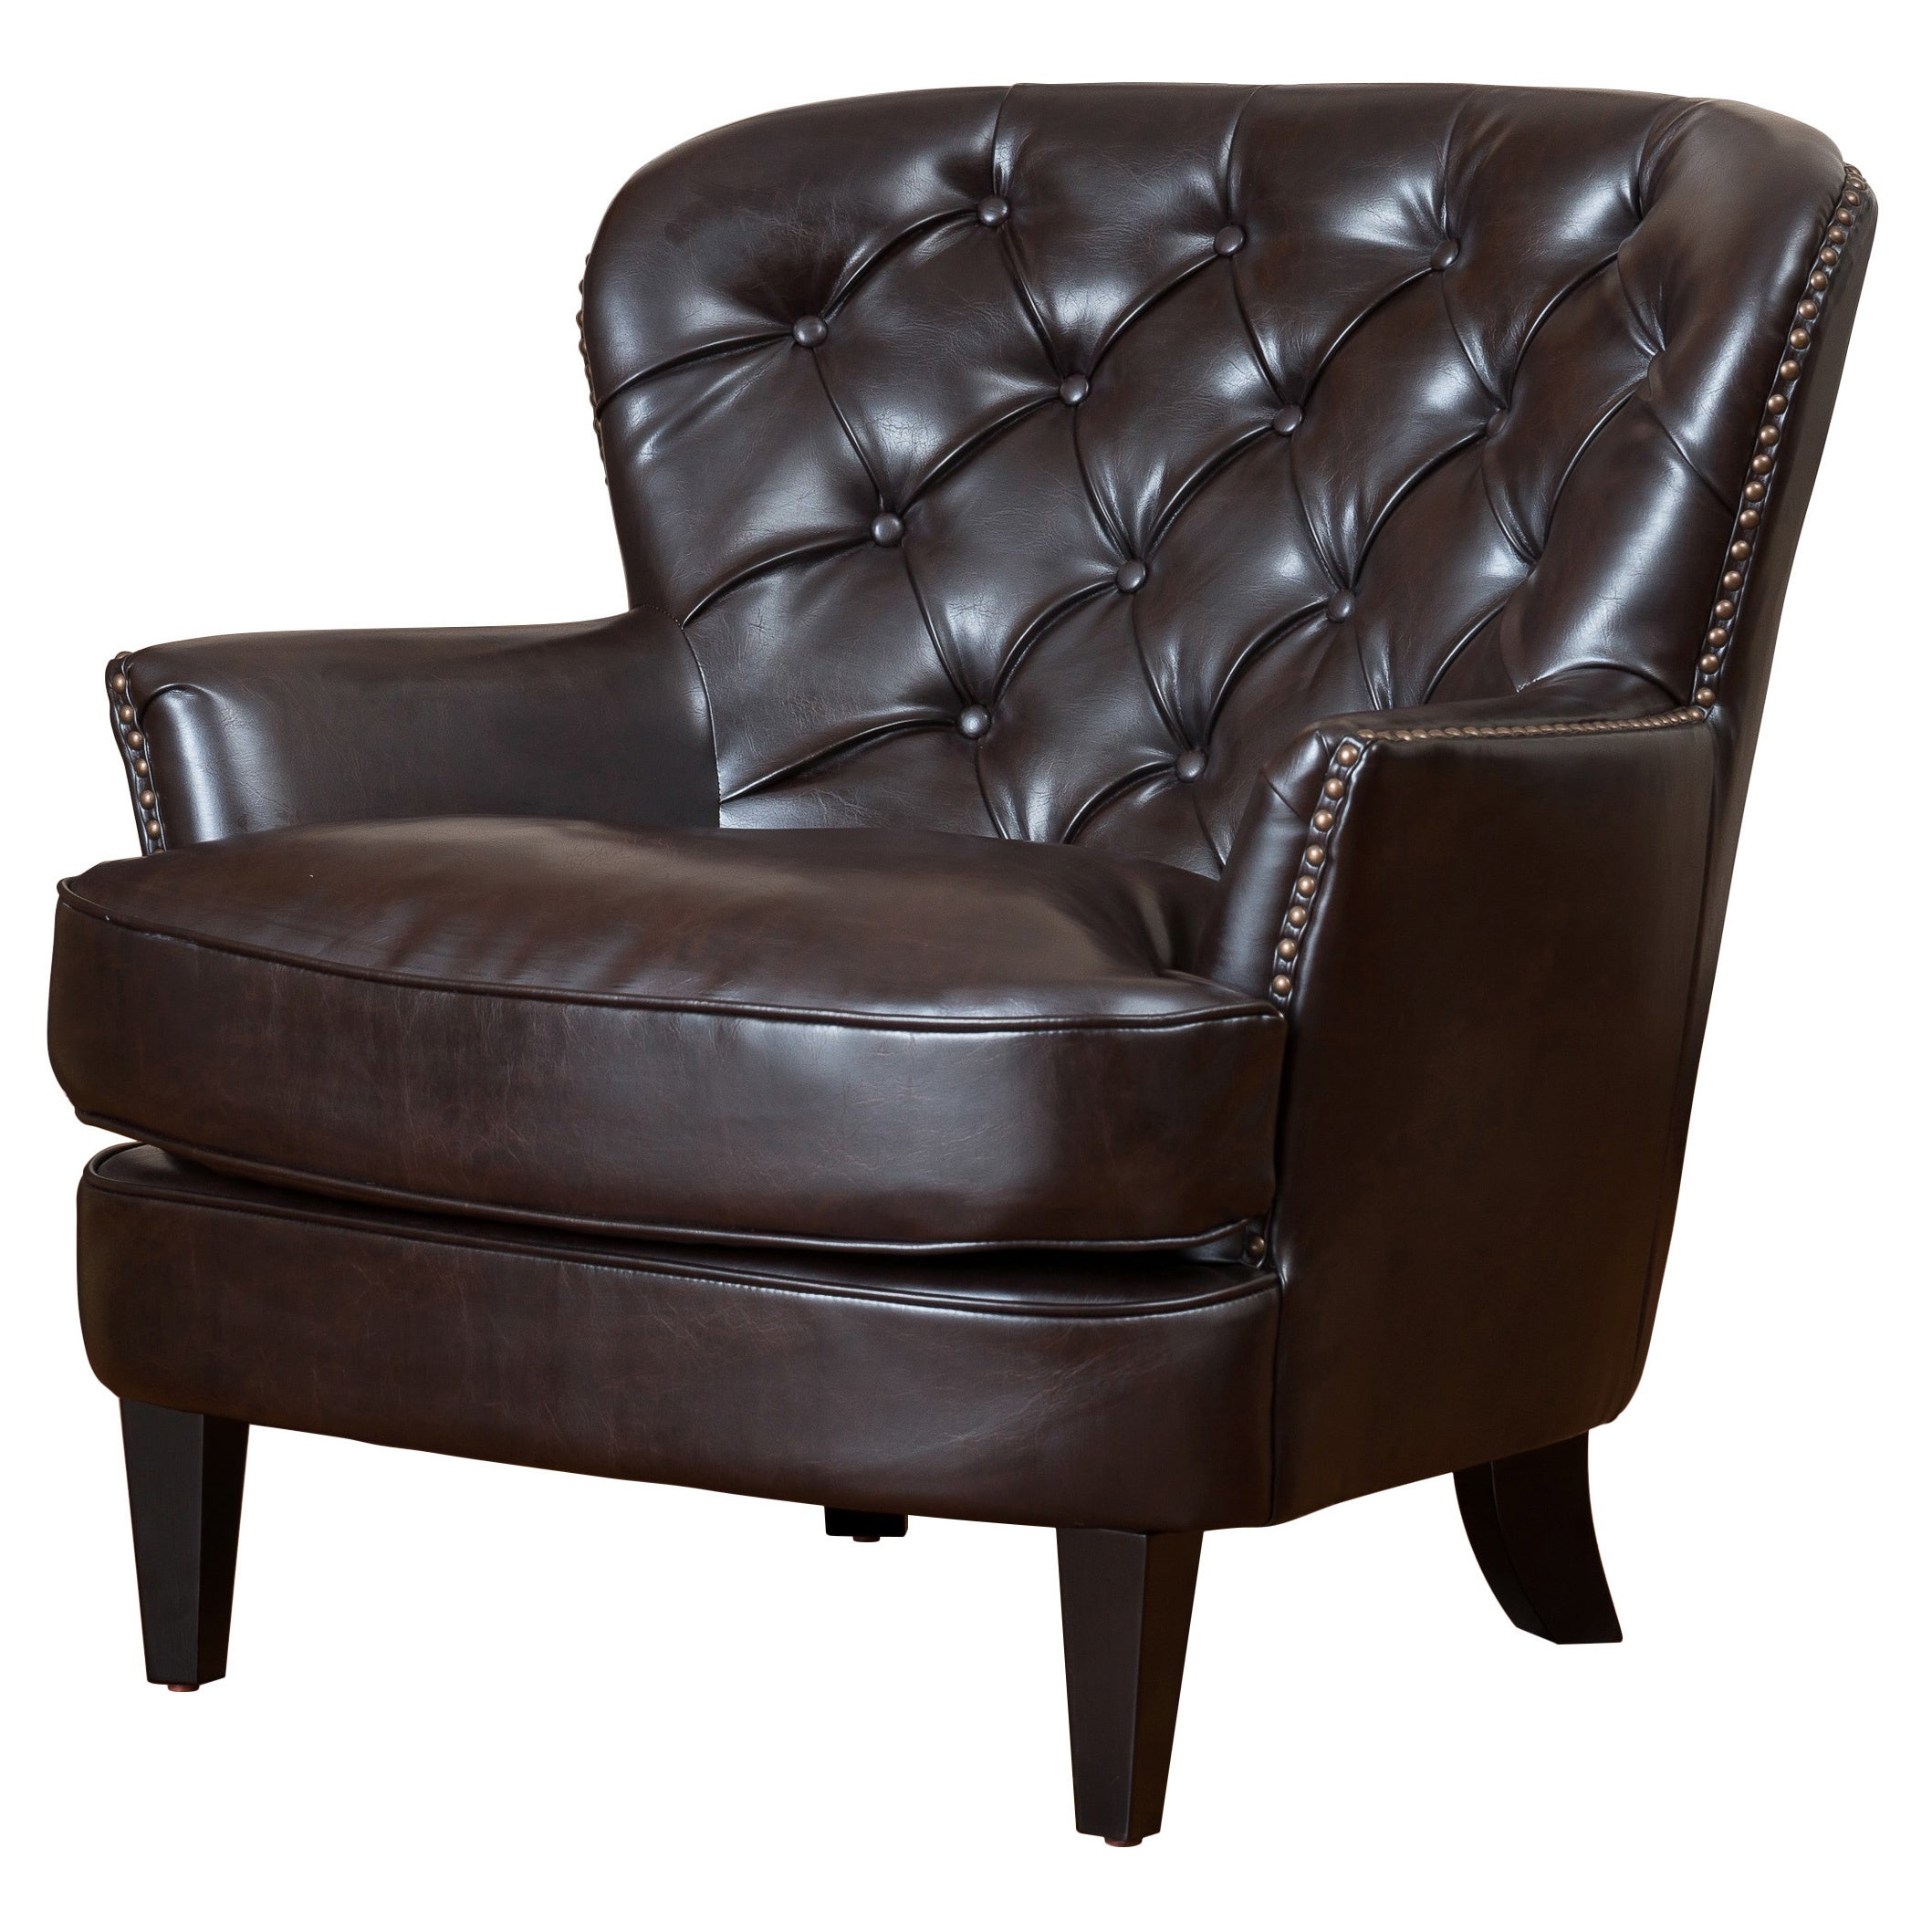 Tafton Oversized Brown Leather Tufted Club Chair By Christopher Knight Home On Sale Overstock 6045761